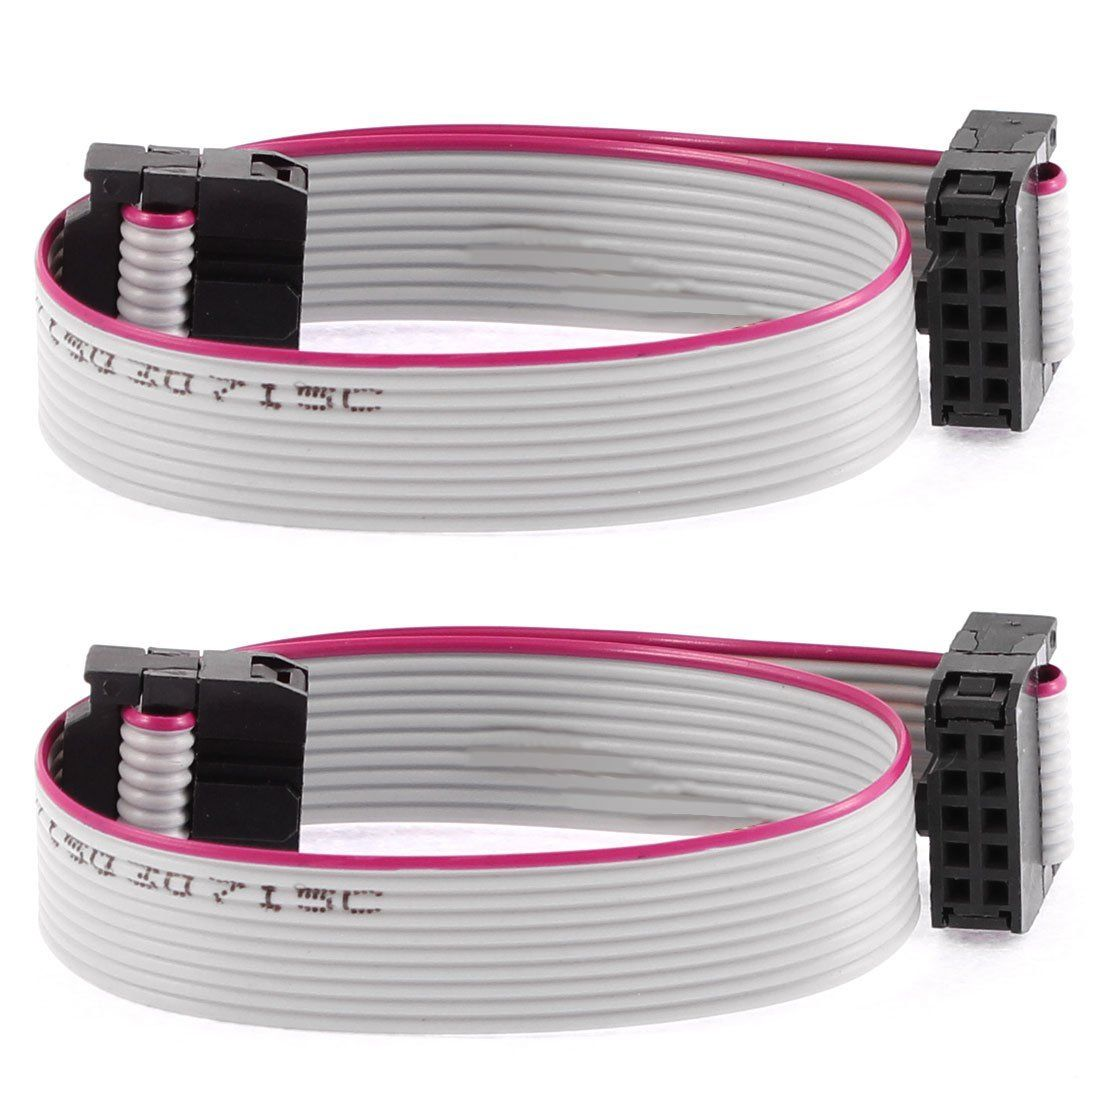 F F Idc Connector 10 Pins Flat Ribbon Cable 2 54mm Pitch 20cm 2pcs For Arduino Cool Things To Buy Pitch Computer Accessories